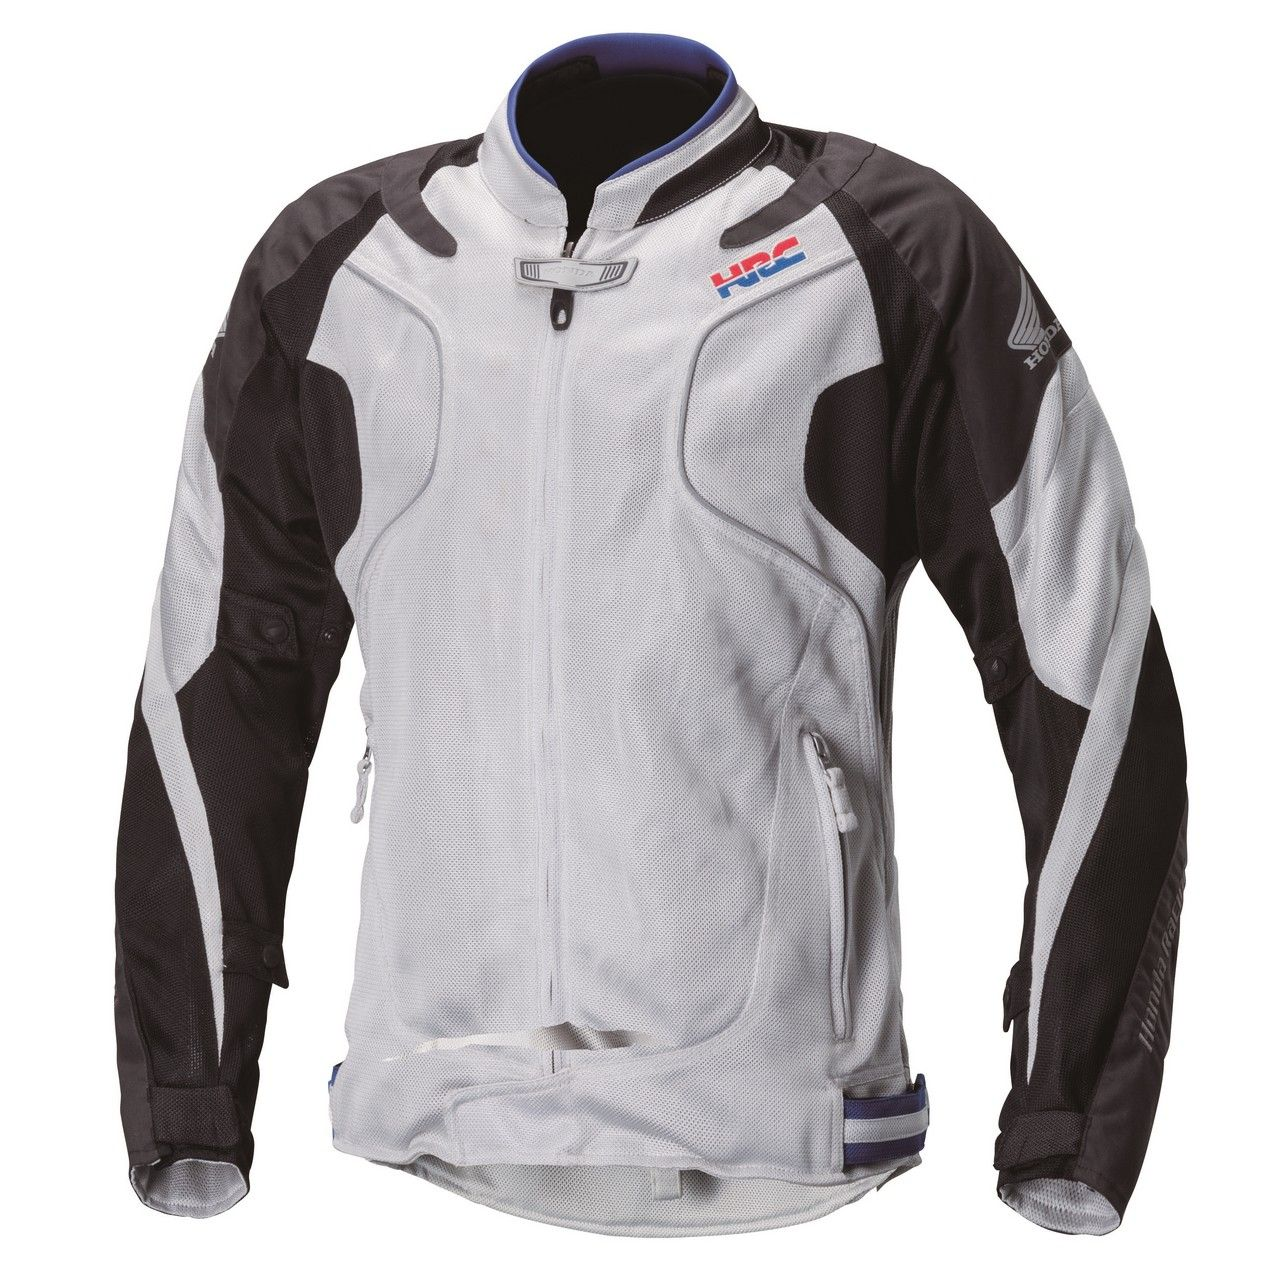 HONDA RIDING GEAR Flash Mesh Jacket